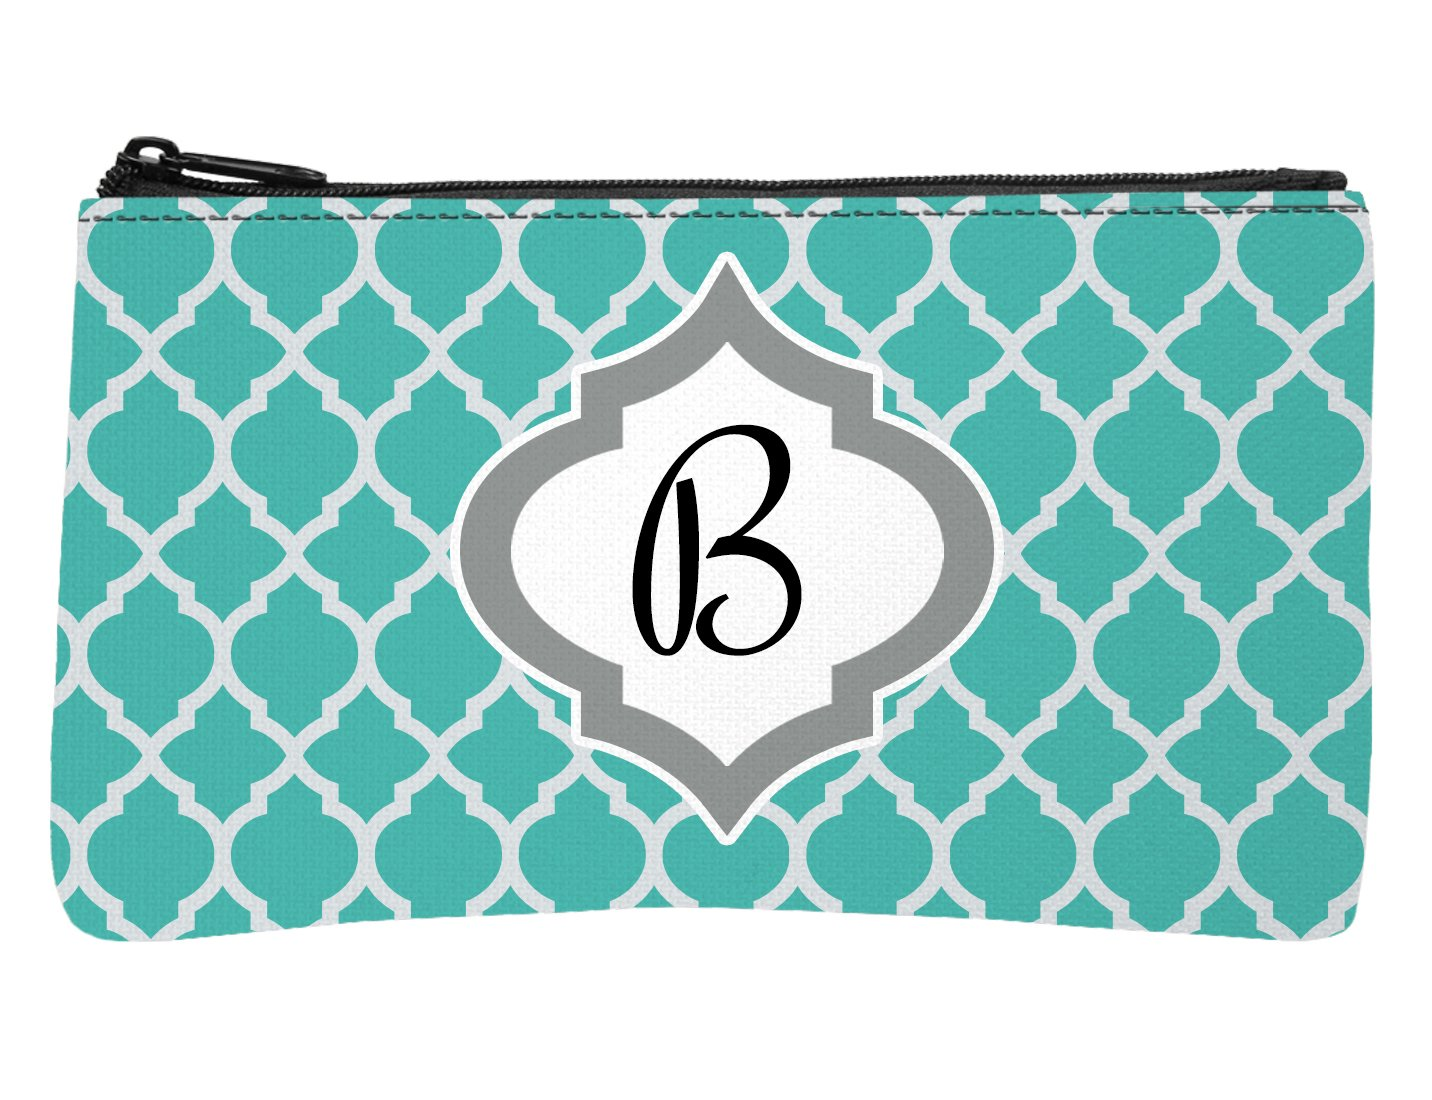 Trendy Teal Moroccan Monogram Design Multi-Purpose Small Zippered Stitch Pouch